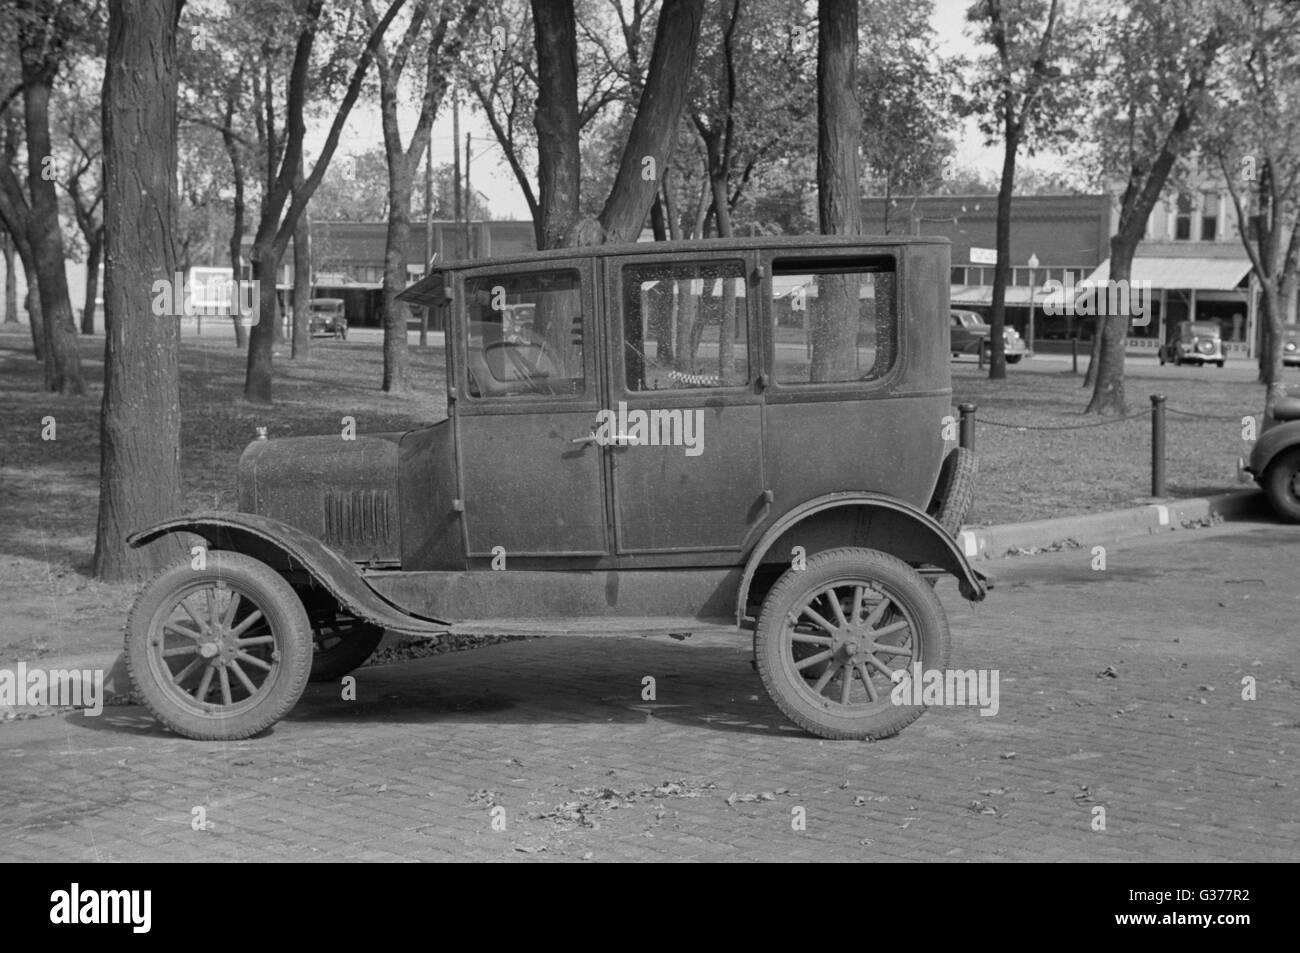 Car parked in front of county courthouse, Yates Center, Kansas. Date 1938 Oct. - Stock Image